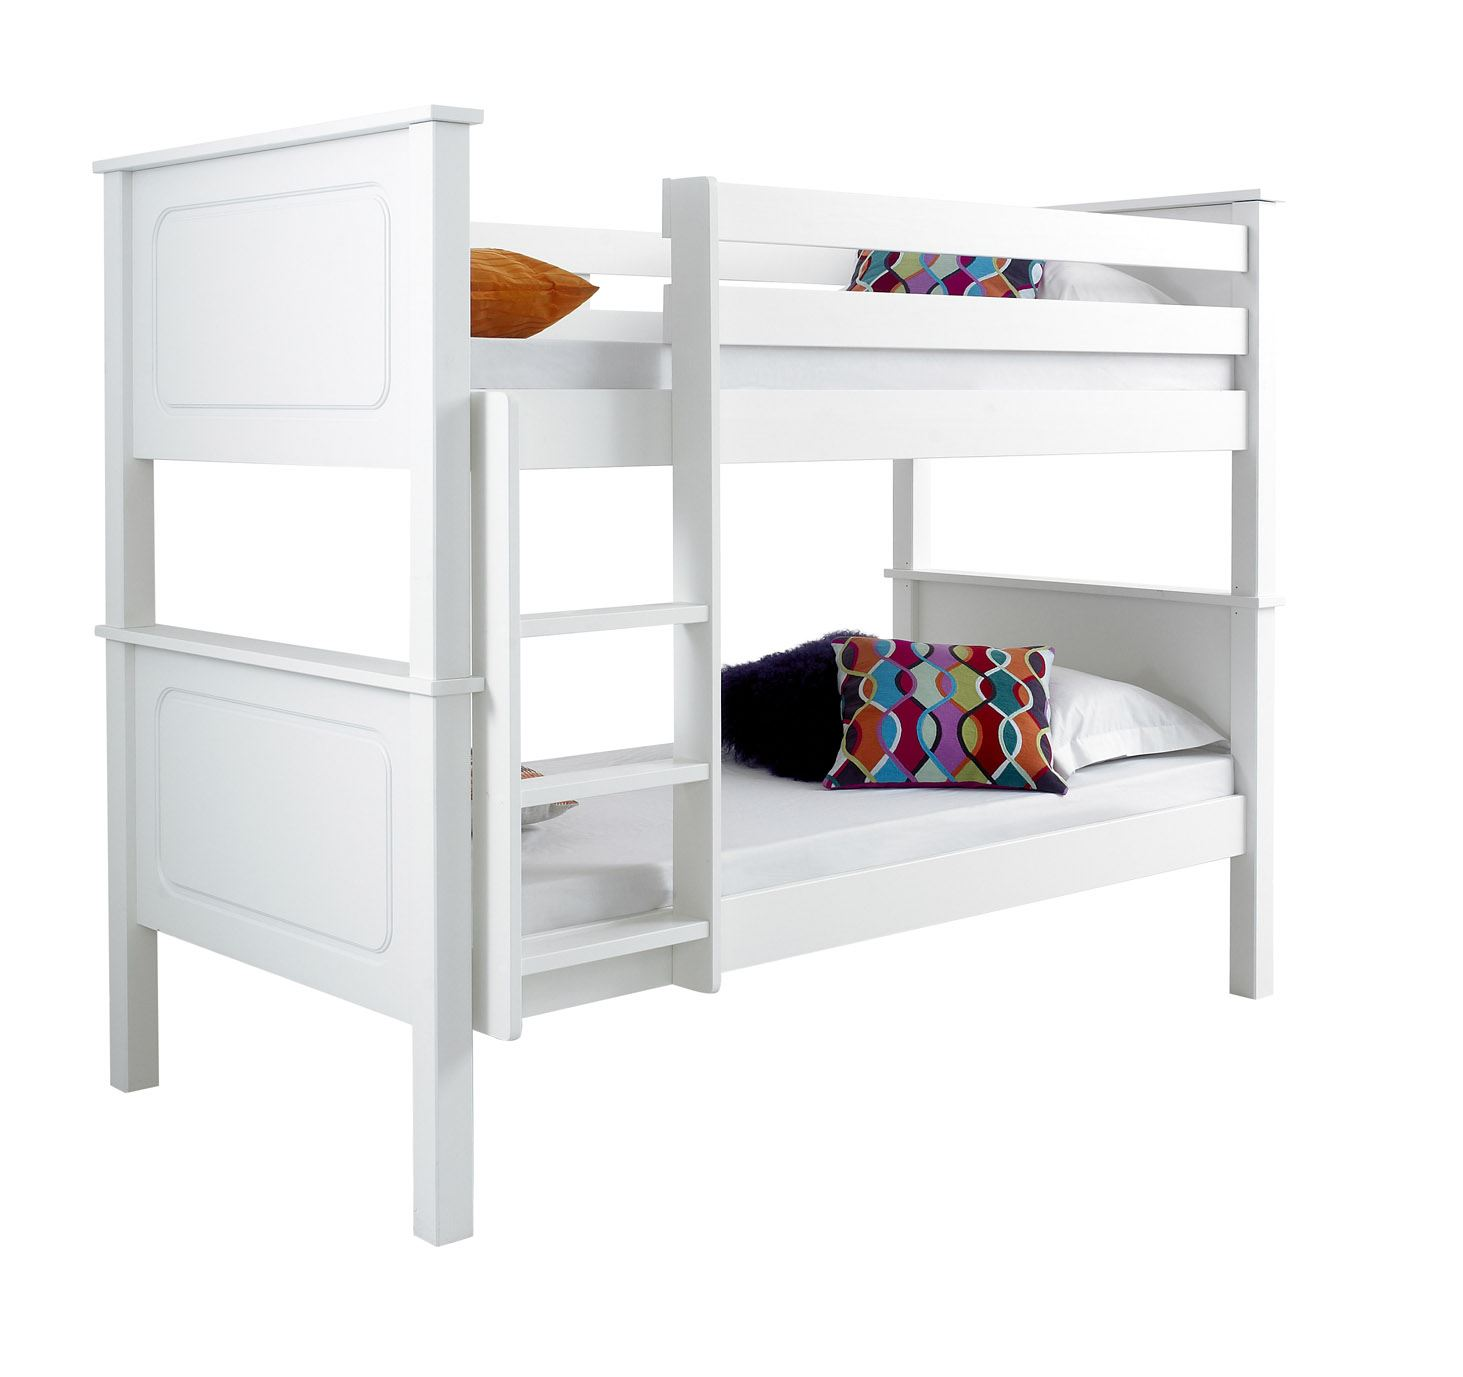 Happy beds vancouver solid wood pine bunk bed 3ft single for Beds vancouver